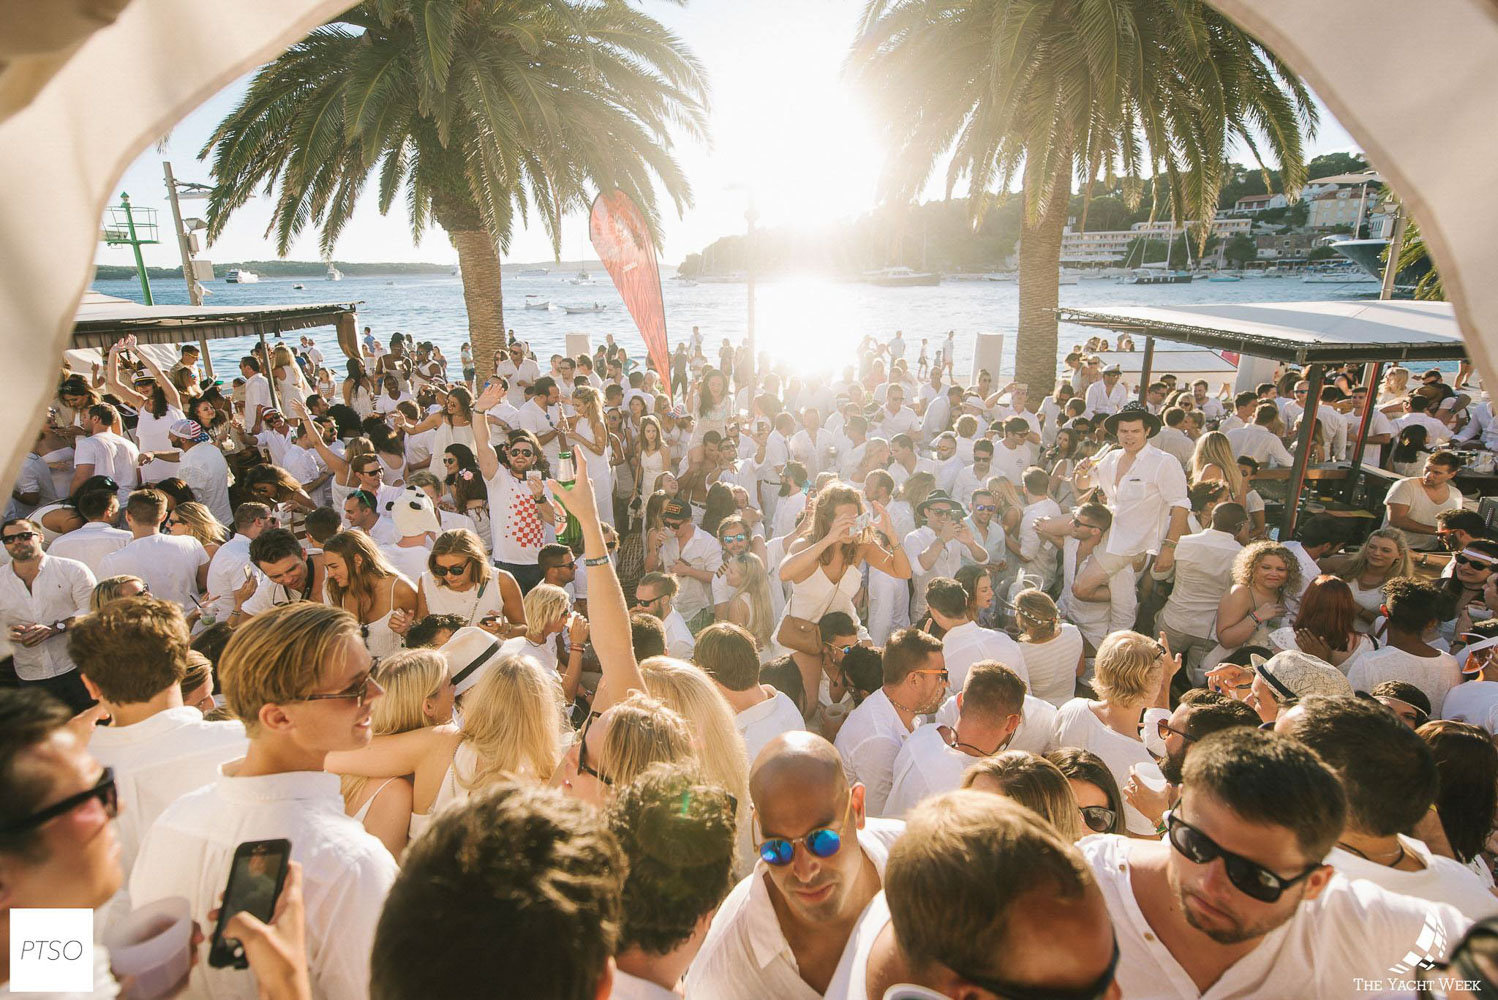 The famous Yacht Week white party